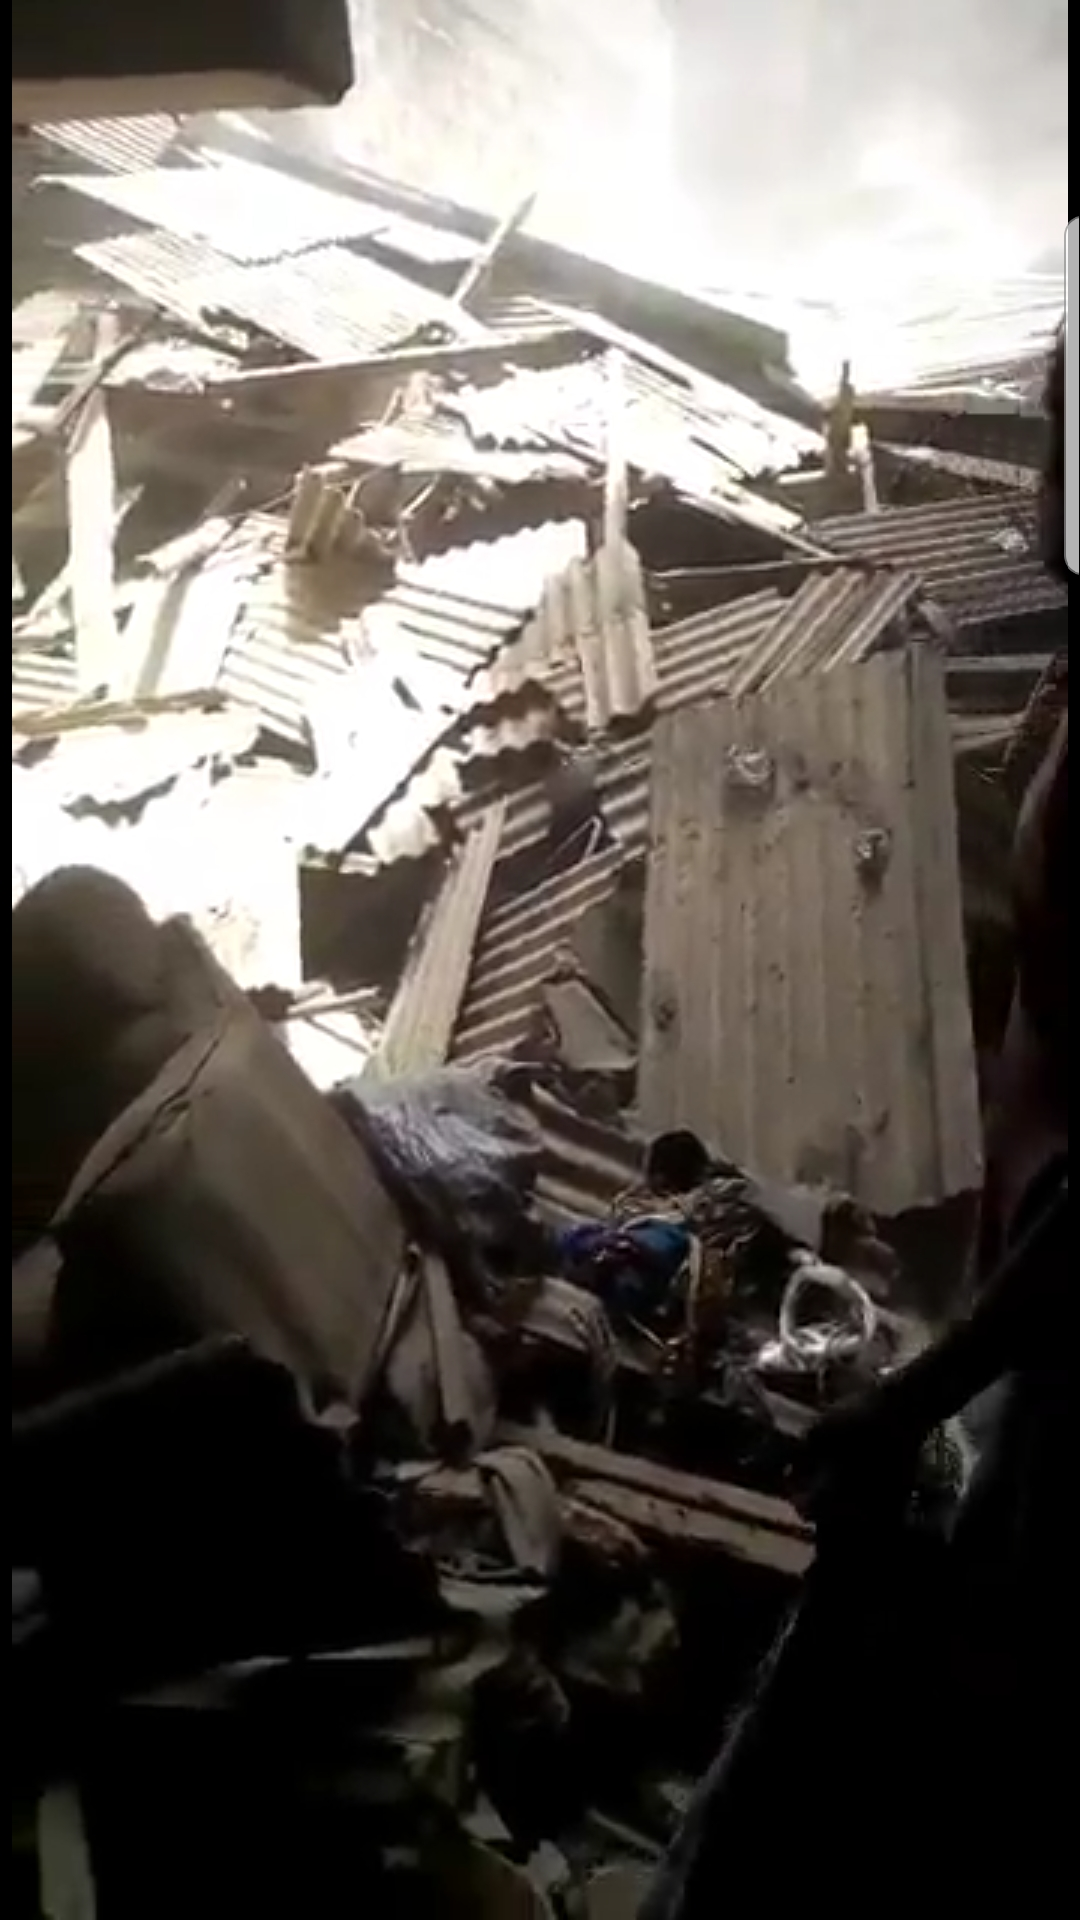 Lagos Island Building collapses During Demolition of Another